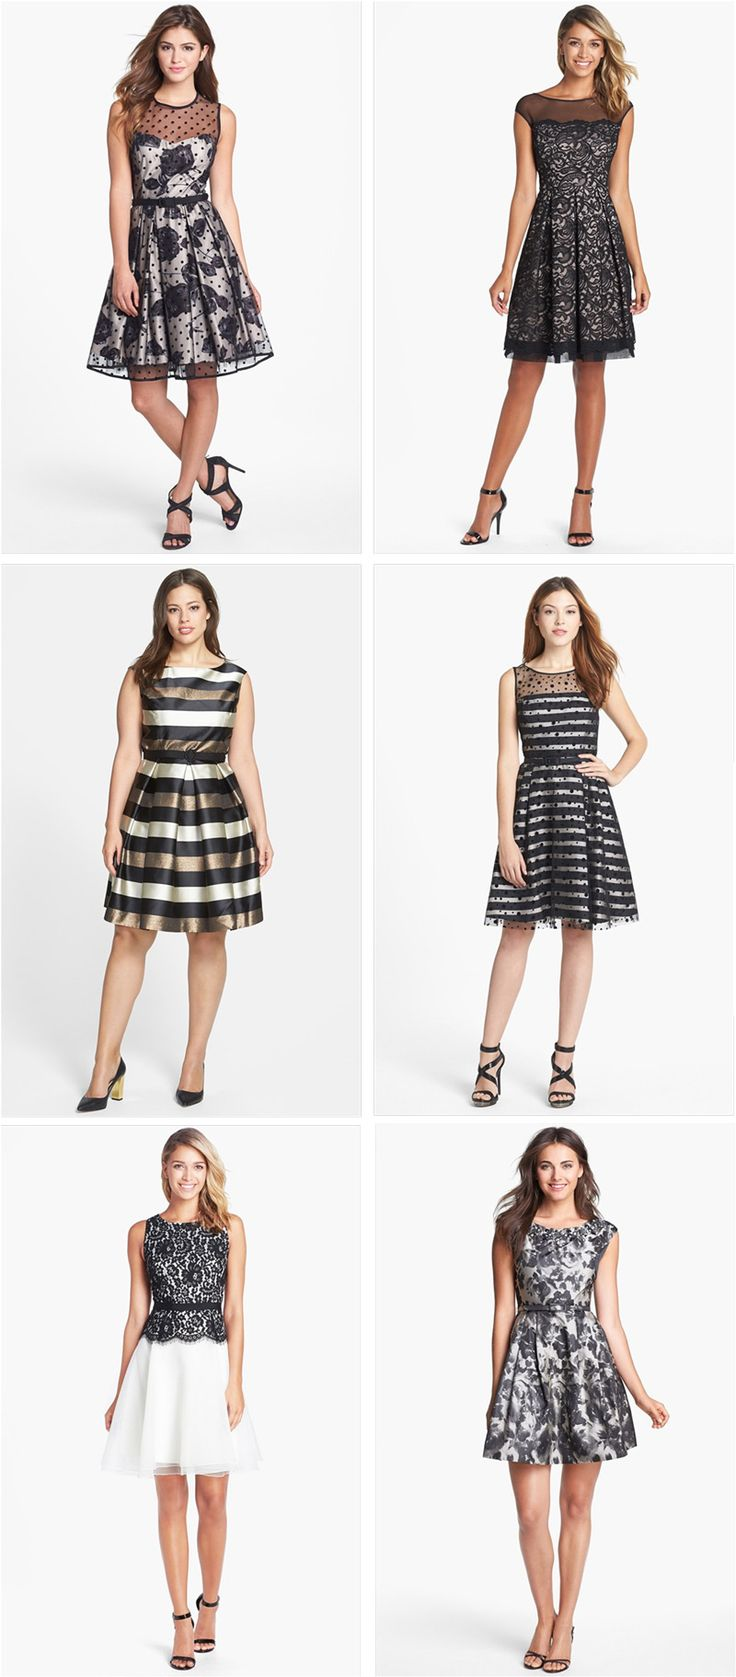 Small Crop Of Styles Of Dresses